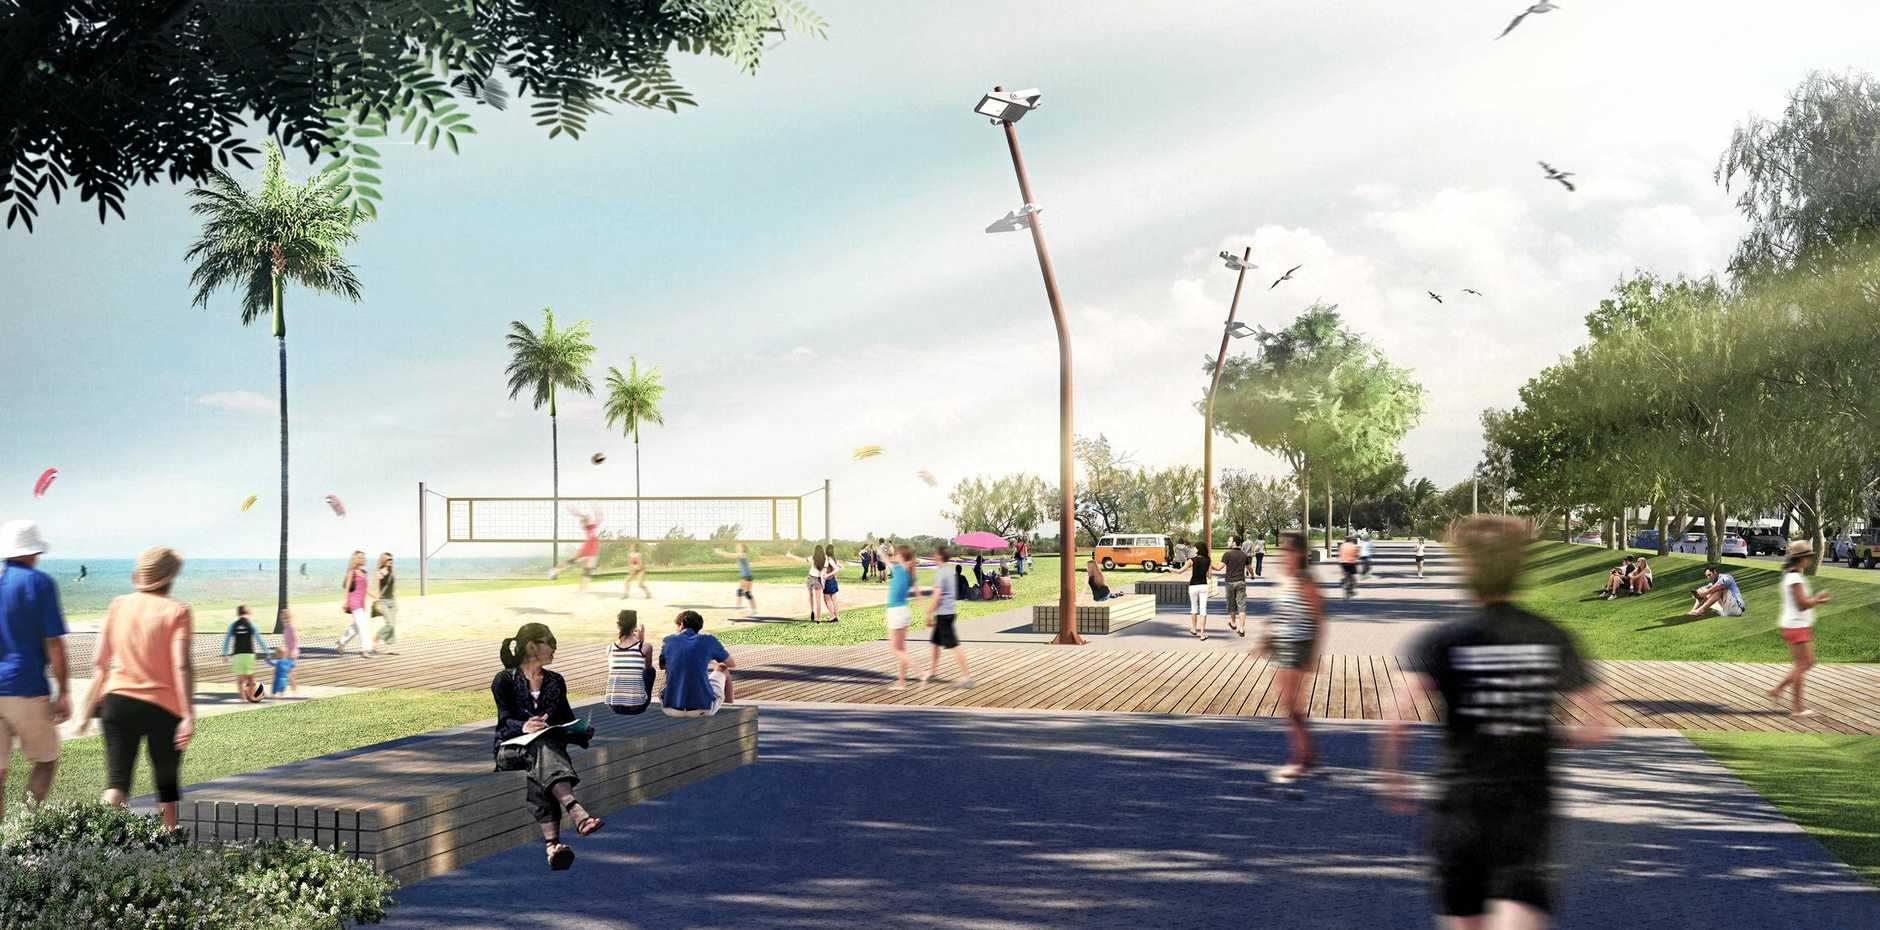 An artist's impression of Mackay's Waterfront PDA.